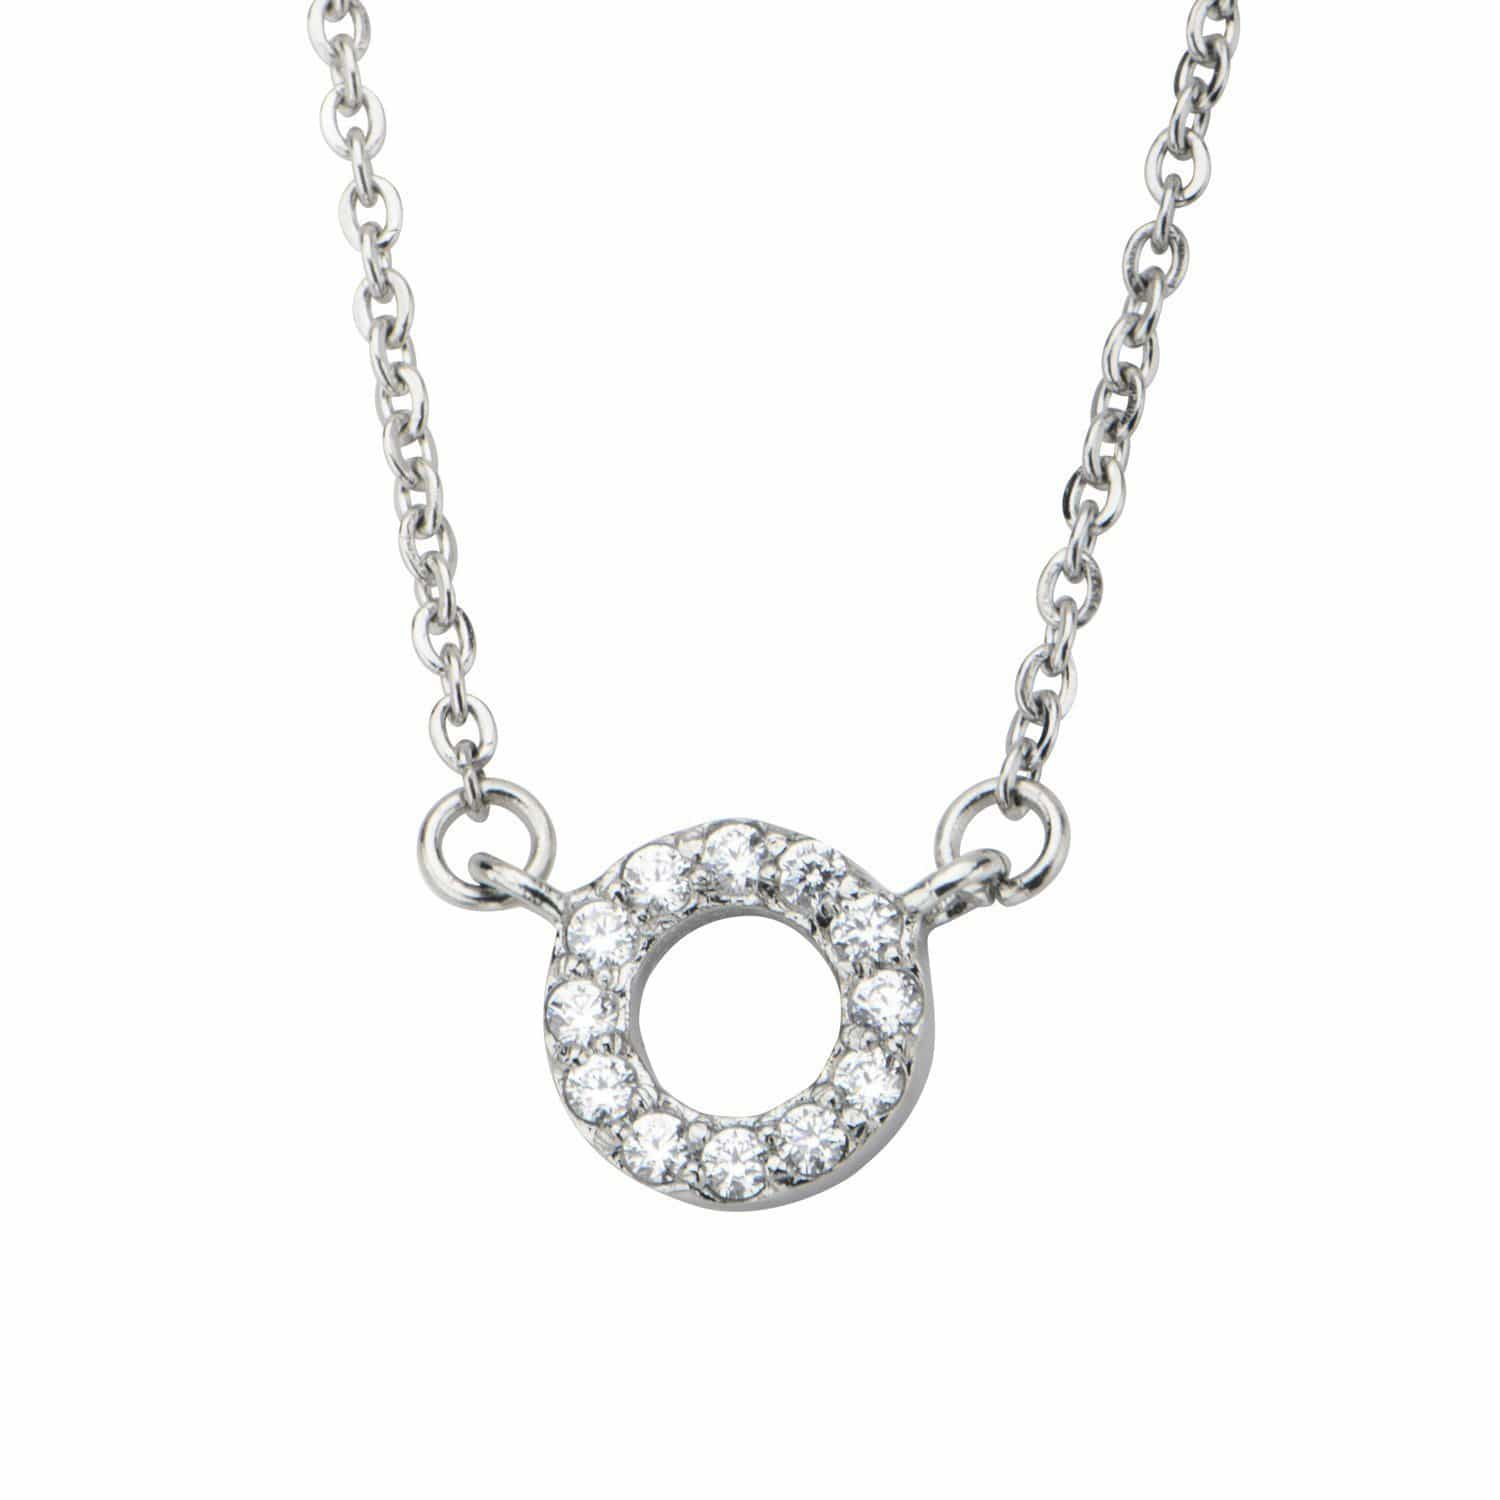 Silver Stainless Steel Twinkle White CZ Ring Necklace Pendants